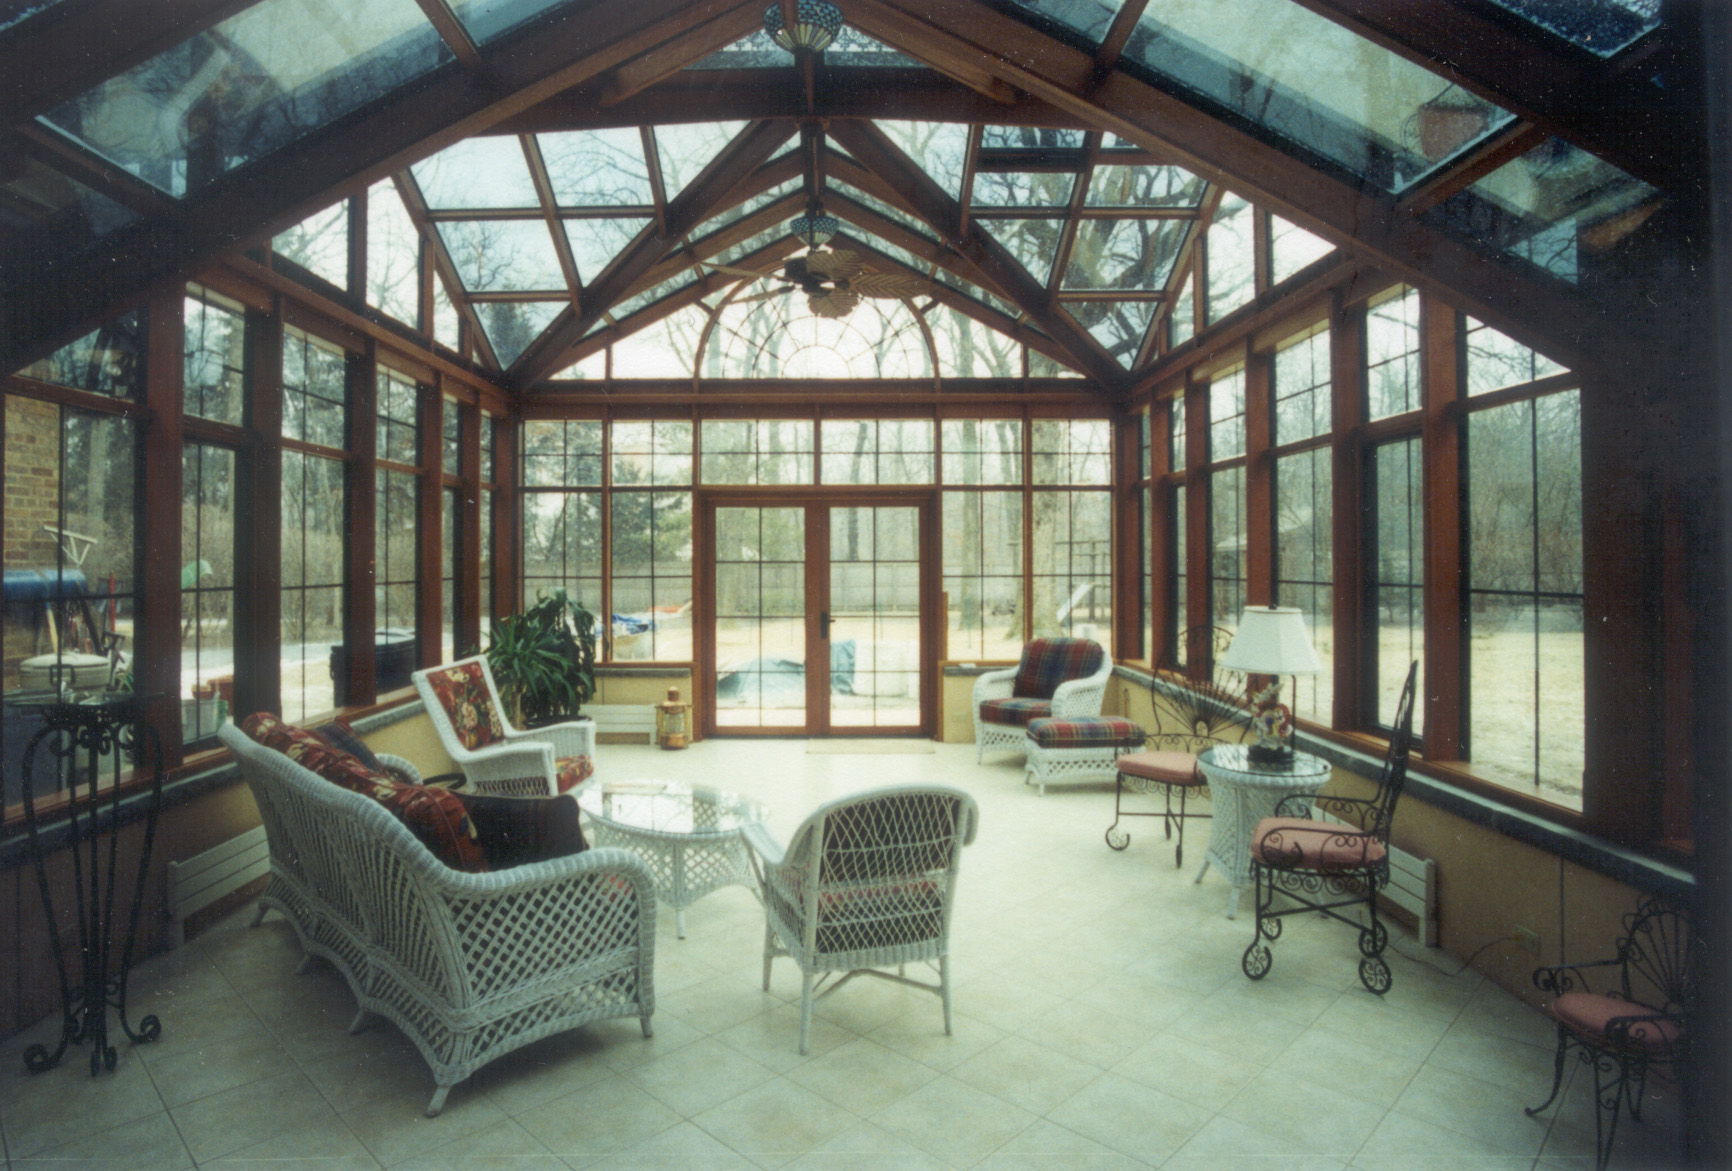 Sun room design ideas interior design ideas for House plans with sunroom